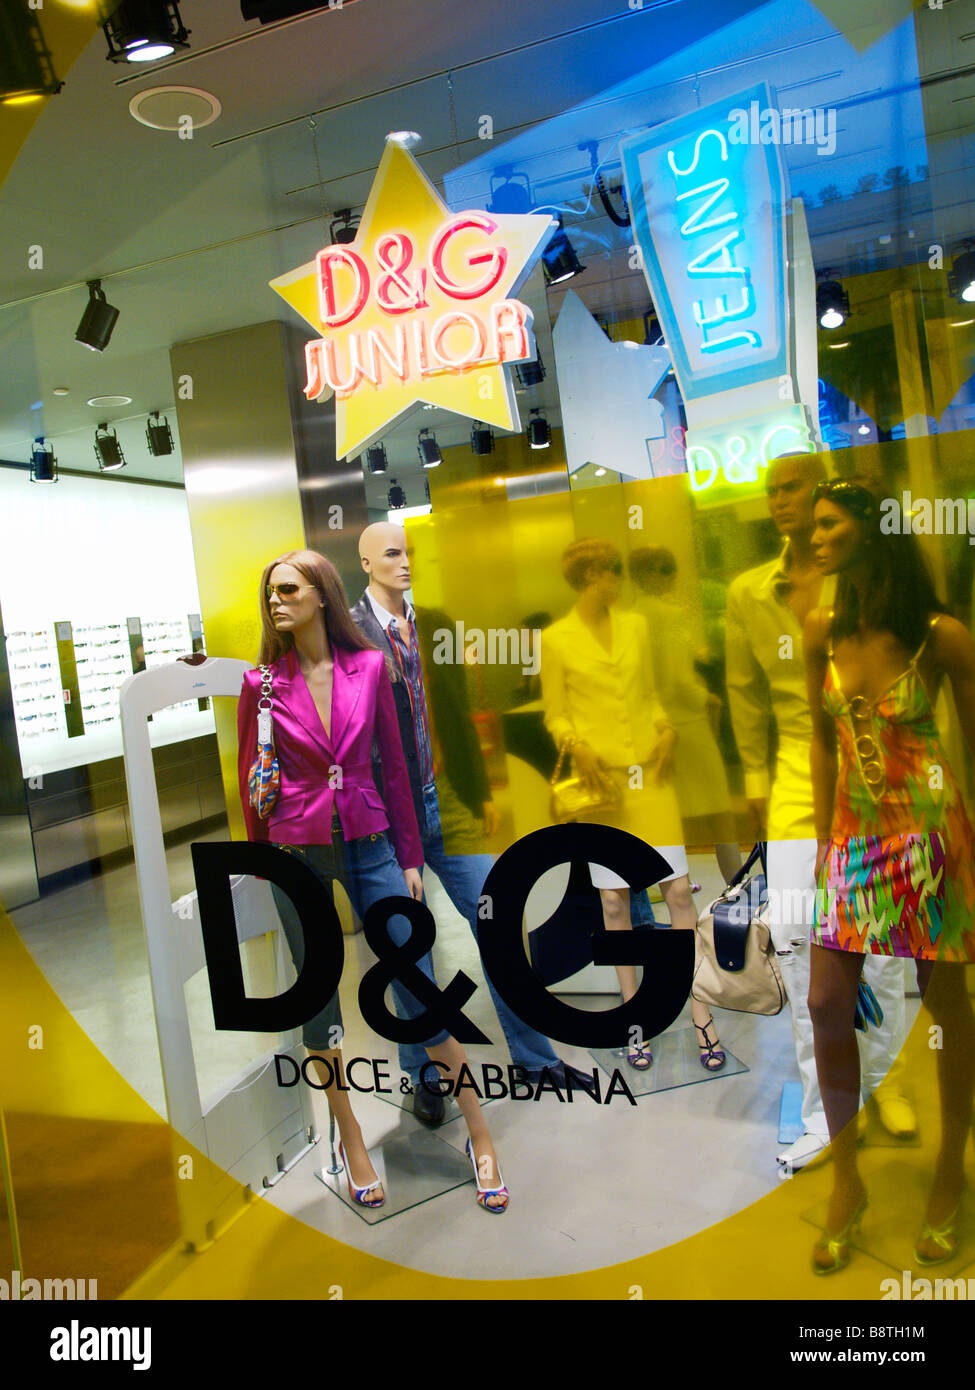 Dolce Gabbana Junior designer fashion store window Piazza di Spagna Roma Lazio Italy - Stock Image